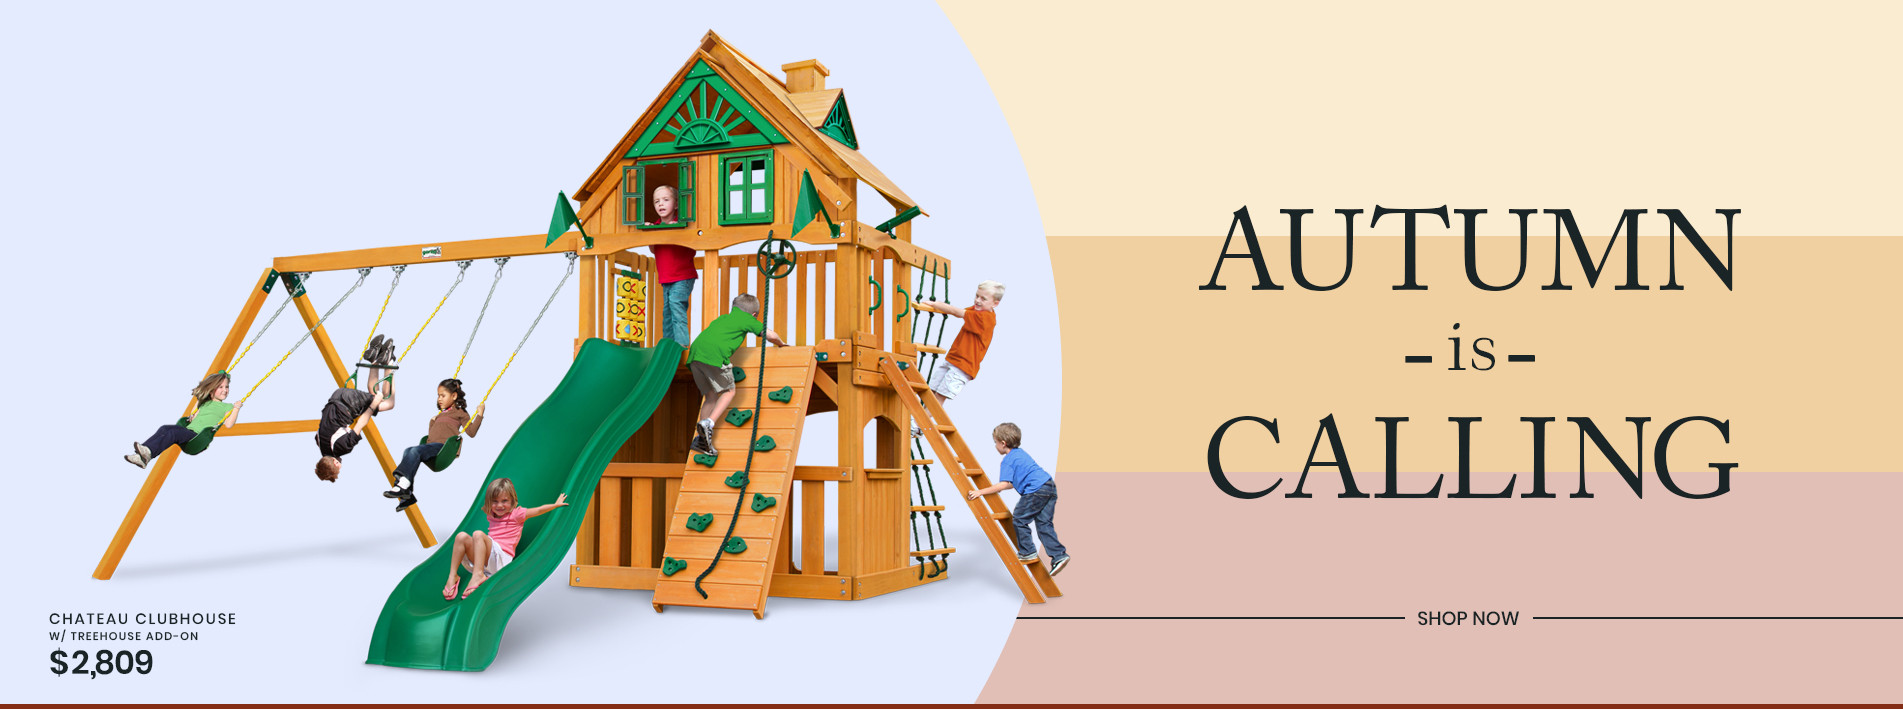 Another Summer is on its way out. Purchase your new PlayNation swing set just in time for Autumn.